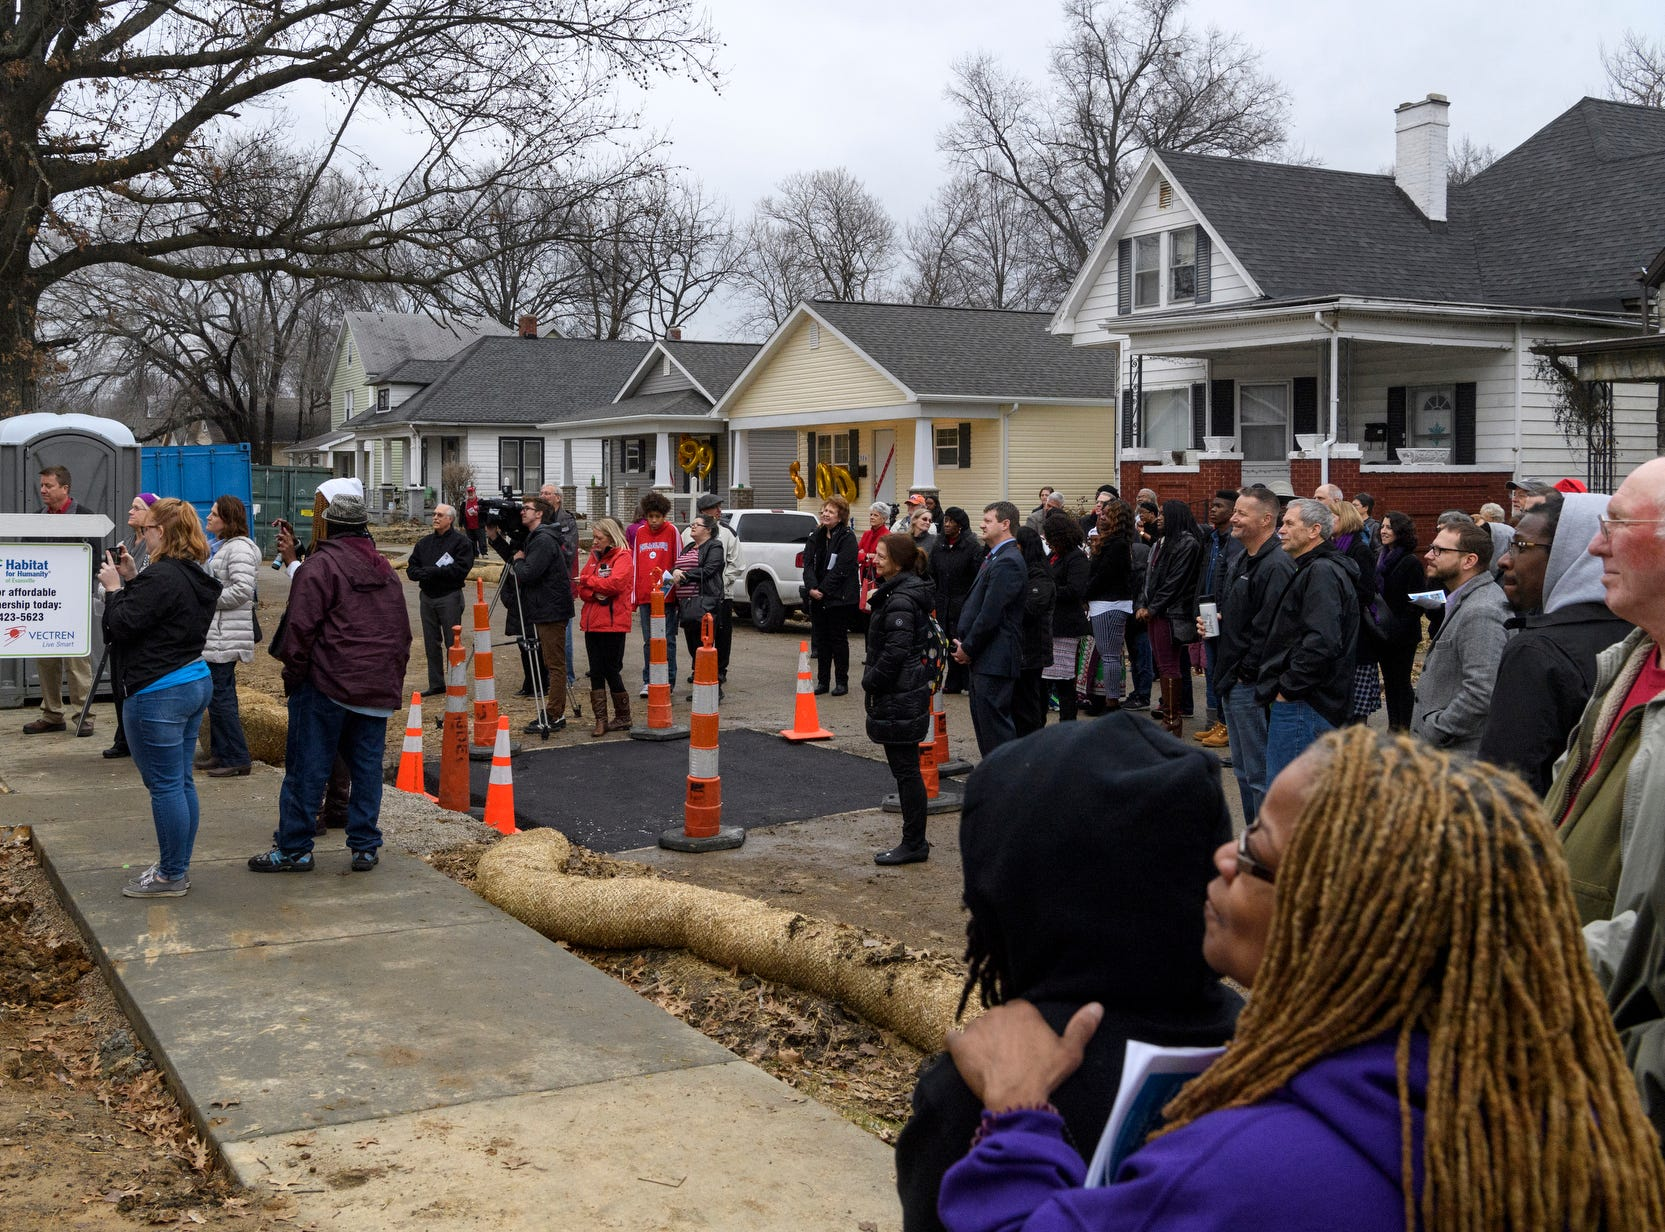 Community members gather on Bedford Avenue to watch Tiffany Wilson, not pictured, receive the keys to her new home during the 500th home dedication ceremony for her and three of her new neighbors in Evansville, Ind., Thursday, Dec. 20, 2018. Evansville's Habitat for Humanity is the 26th affiliate nationwide to reach 500 home builds.